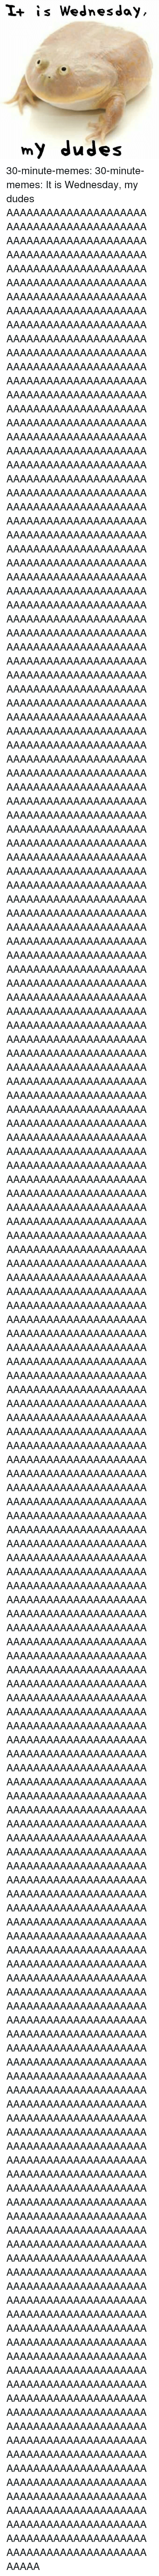 It Is Wednesday: I+ is Wednesday  my dudes 30-minute-memes:  30-minute-memes: It is Wednesday, my dudes AAAAAAAAAAAAAAAAAAAAAAAAAAAAAAAAAAAAAAAAAAAAAAAAAAAAAAAAAAAAAAAAAAAAAAAAAAAAAAAAAAAAAAAAAAAAAAAAAAAAAAAAAAAAAAAAAAAAAAAAAAAAAAAAAAAAAAAAAAAAAAAAAAAAAAAAAAAAAAAAAAAAAAAAAAAAAAAAAAAAAAAAAAAAAAAAAAAAAAAAAAAAAAAAAAAAAAAAAAAAAAAAAAAAAAAAAAAAAAAAAAAAAAAAAAAAAAAAAAAAAAAAAAAAAAAAAAAAAAAAAAAAAAAAAAAAAAAAAAAAAAAAAAAAAAAAAAAAAAAAAAAAAAAAAAAAAAAAAAAAAAAAAAAAAAAAAAAAAAAAAAAAAAAAAAAAAAAAAAAAAAAAAAAAAAAAAAAAAAAAAAAAAAAAAAAAAAAAAAAAAAAAAAAAAAAAAAAAAAAAAAAAAAAAAAAAAAAAAAAAAAAAAAAAAAAAAAAAAAAAAAAAAAAAAAAAAAAAAAAAAAAAAAAAAAAAAAAAAAAAAAAAAAAAAAAAAAAAAAAAAAAAAAAAAAAAAAAAAAAAAAAAAAAAAAAAAAAAAAAAAAAAAAAAAAAAAAAAAAAAAAAAAAAAAAAAAAAAAAAAAAAAAAAAAAAAAAAAAAAAAAAAAAAAAAAAAAAAAAAAAAAAAAAAAAAAAAAAAAAAAAAAAAAAAAAAAAAAAAAAAAAAAAAAAAAAAAAAAAAAAAAAAAAAAAAAAAAAAAAAAAAAAAAAAAAAAAAAAAAAAAAAAAAAAAAAAAAAAAAAAAAAAAAAAAAAAAAAAAAAAAAAAAAAAAAAAAAAAAAAAAAAAAAAAAAAAAAAAAAAAAAAAAAAAAAAAAAAAAAAAAAAAAAAAAAAAAAAAAAAAAAAAAAAAAAAAAAAAAAAAAAAAAAAAAAAAAAAAAAAAAAAAAAAAAAAAAAAAAAAAAAAAAAAAAAAAAAAAAAAAAAAAAAAAAAAAAAAAAAAAAAAAAAAAAAAAAAAAAAAAAAAAAAAAAAAAAAAAAAAAAAAAAAAAAAAAAAAAAAAAAAAAAAAAAAAAAAAAAAAAAAAAAAAAAAAAAAAAAAAAAAAAAAAAAAAAAAAAAAAAAAAAAAAAAAAAAAAAAAAAAAAAAAAAAAAAAAAAAAAAAAAAAAAAAAAAAAAAAAAAAAAAAAAAAAAAAAAAAAAAAAAAAAAAAAAAAAAAAAAAAAAAAAAAAAAAAAAAAAAAAAAAAAAAAAAAAAAAAAAAAAAAAAAAAAAAAAAAAAAAAAAAAAAAAAAAAAAAAAAAAAAAAAAAAAAAAAAAAAAAAAAAAAAAAAAAAAAAAAAAAAAAAAAAAAAAAAAAAAAAAAAAAAAAAAAAAAAAAAAAAAAAAAAAAAAAAAAAAAAAAAAAAAAAAAAAAAAAAAAAAAAAAAAAAAAAAAAAAAAAAAAAAAAAAAAAAAAAAAAAAAAAAAAAAAAAAAAAAAAAAAAAAAAAAAAAAAAAAAAAAAAAAAAAAAAAAAAAAAAAAAAAAAAAAAAAAAAAAAAAAAAAAAAAAAAAAAAAAAAAAAAAAAAAAAAAAAAAAAAAAAAAAAAAAAAAAAAAAAAAAAAAAAAAAAAAAAAAAAAAAAAAAAAAAAAAAAAAAAAAAAAAAAAAAAAAAAAAAAAAAAAAAAAAAAAAAAAAAAAAAAAAAAAAAAAAAAAAAAAAAAAAAAAAAAAAAAAAAAAAAAAAAAAAAAAAAAAAAAAAAAAAAAAAAAAAAAAAAAAAAAAAAAAAAAAAAAAAAAAAAAAAAAAAAAAAAAAAAAAAAAAAAAAAAAAAAAAAAAAAAAAAAAAAAAAAAAAAAAAAAAAAAAAAAAAAAAAAAAAAAAAAAAAAAAAAAAAAAAAAAAAAAAAAAAAAAAAAAAAAAAAAAAAAAAAAAAA